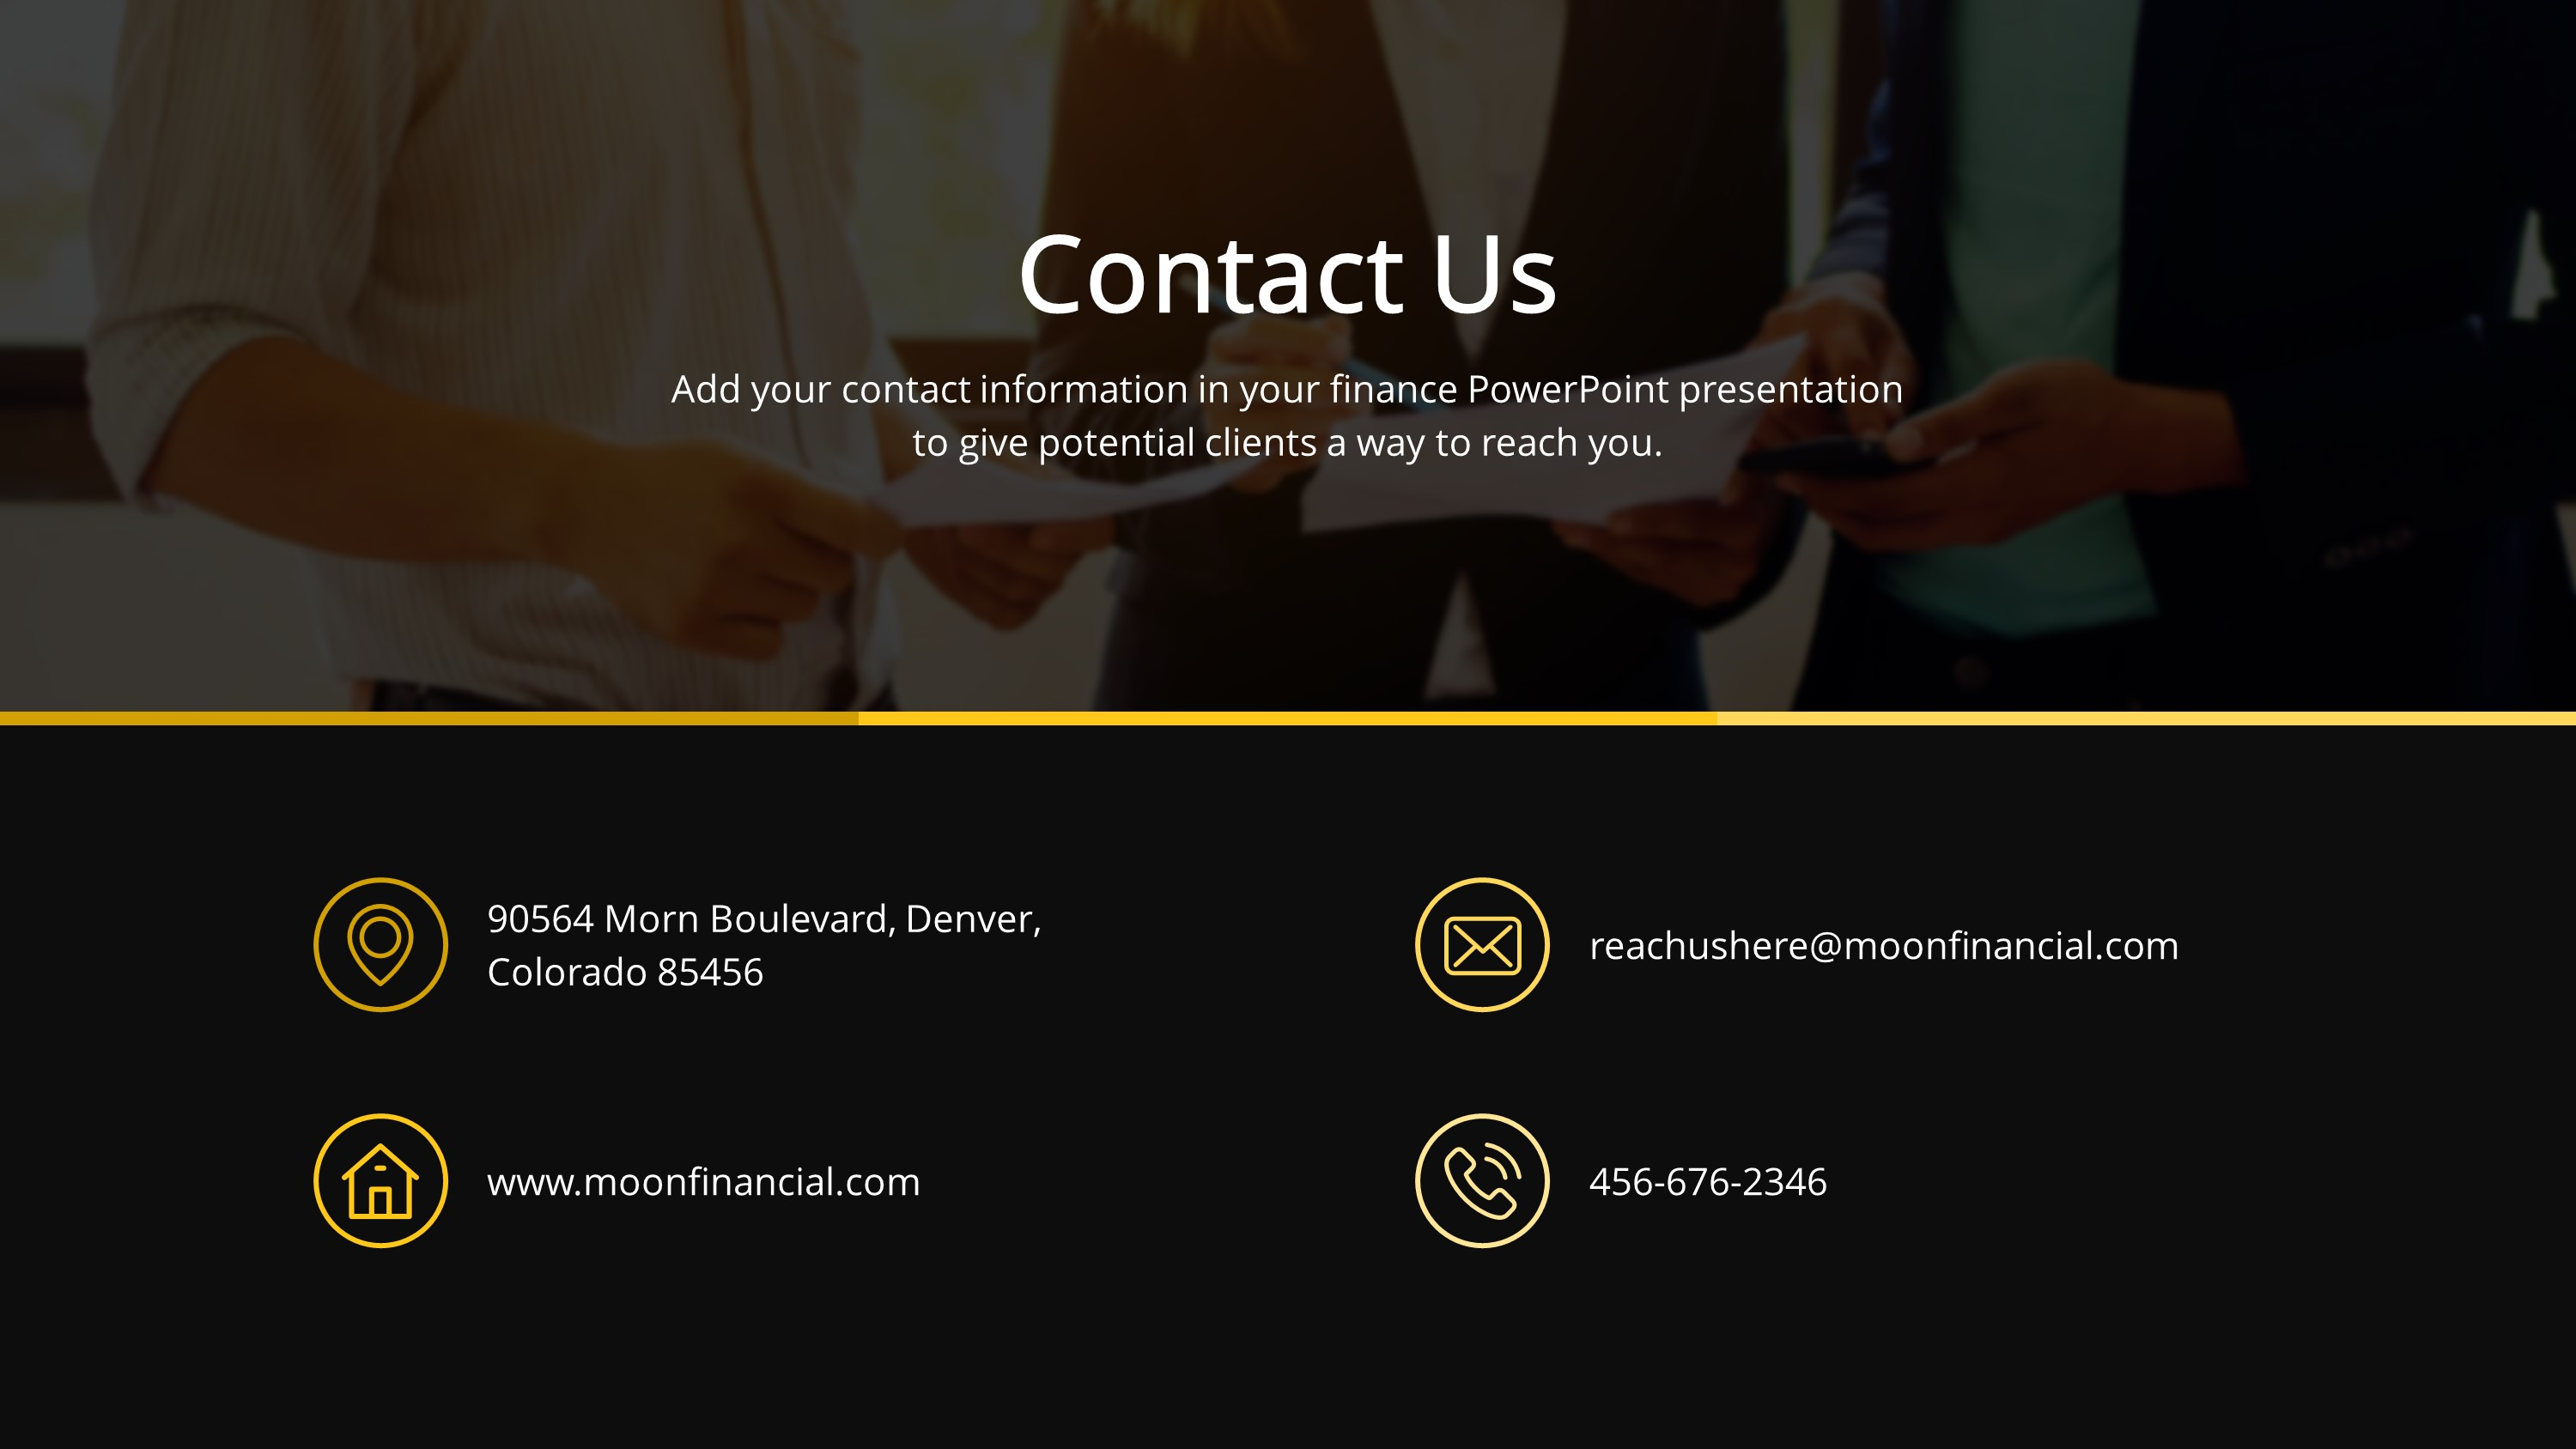 contact us template free download - free download our team powerpoint template bundle slidestore